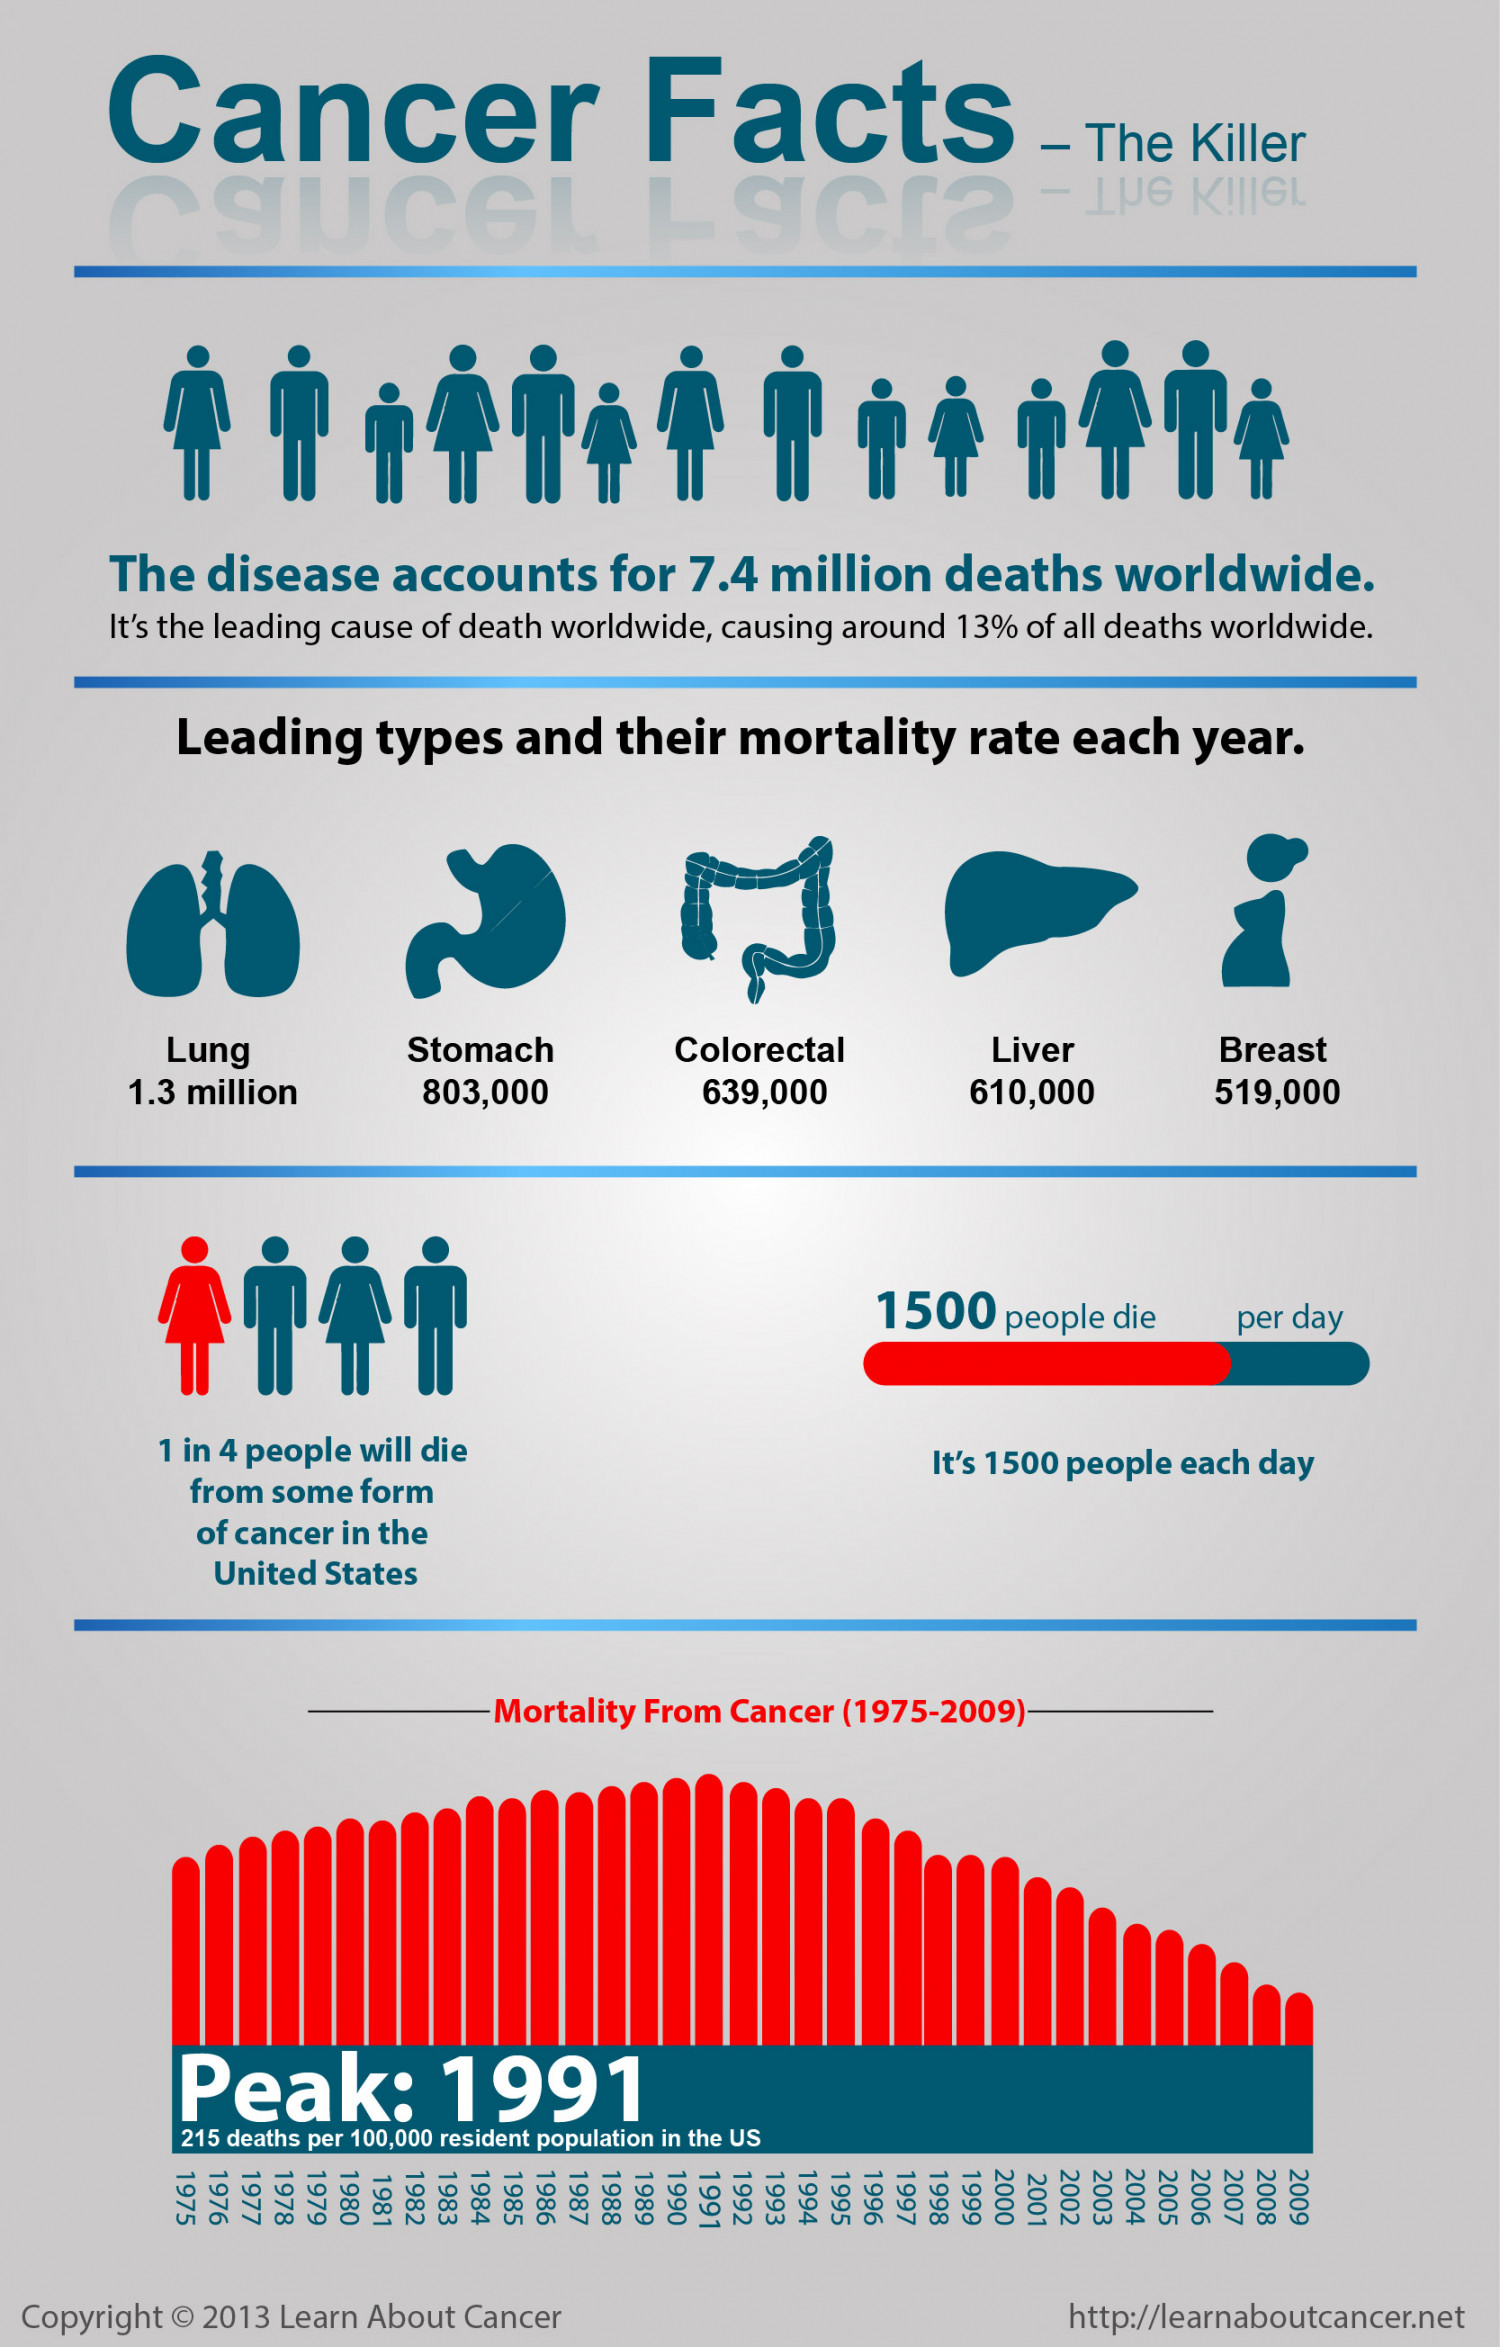 Cancer Facts - The Killer Infographic